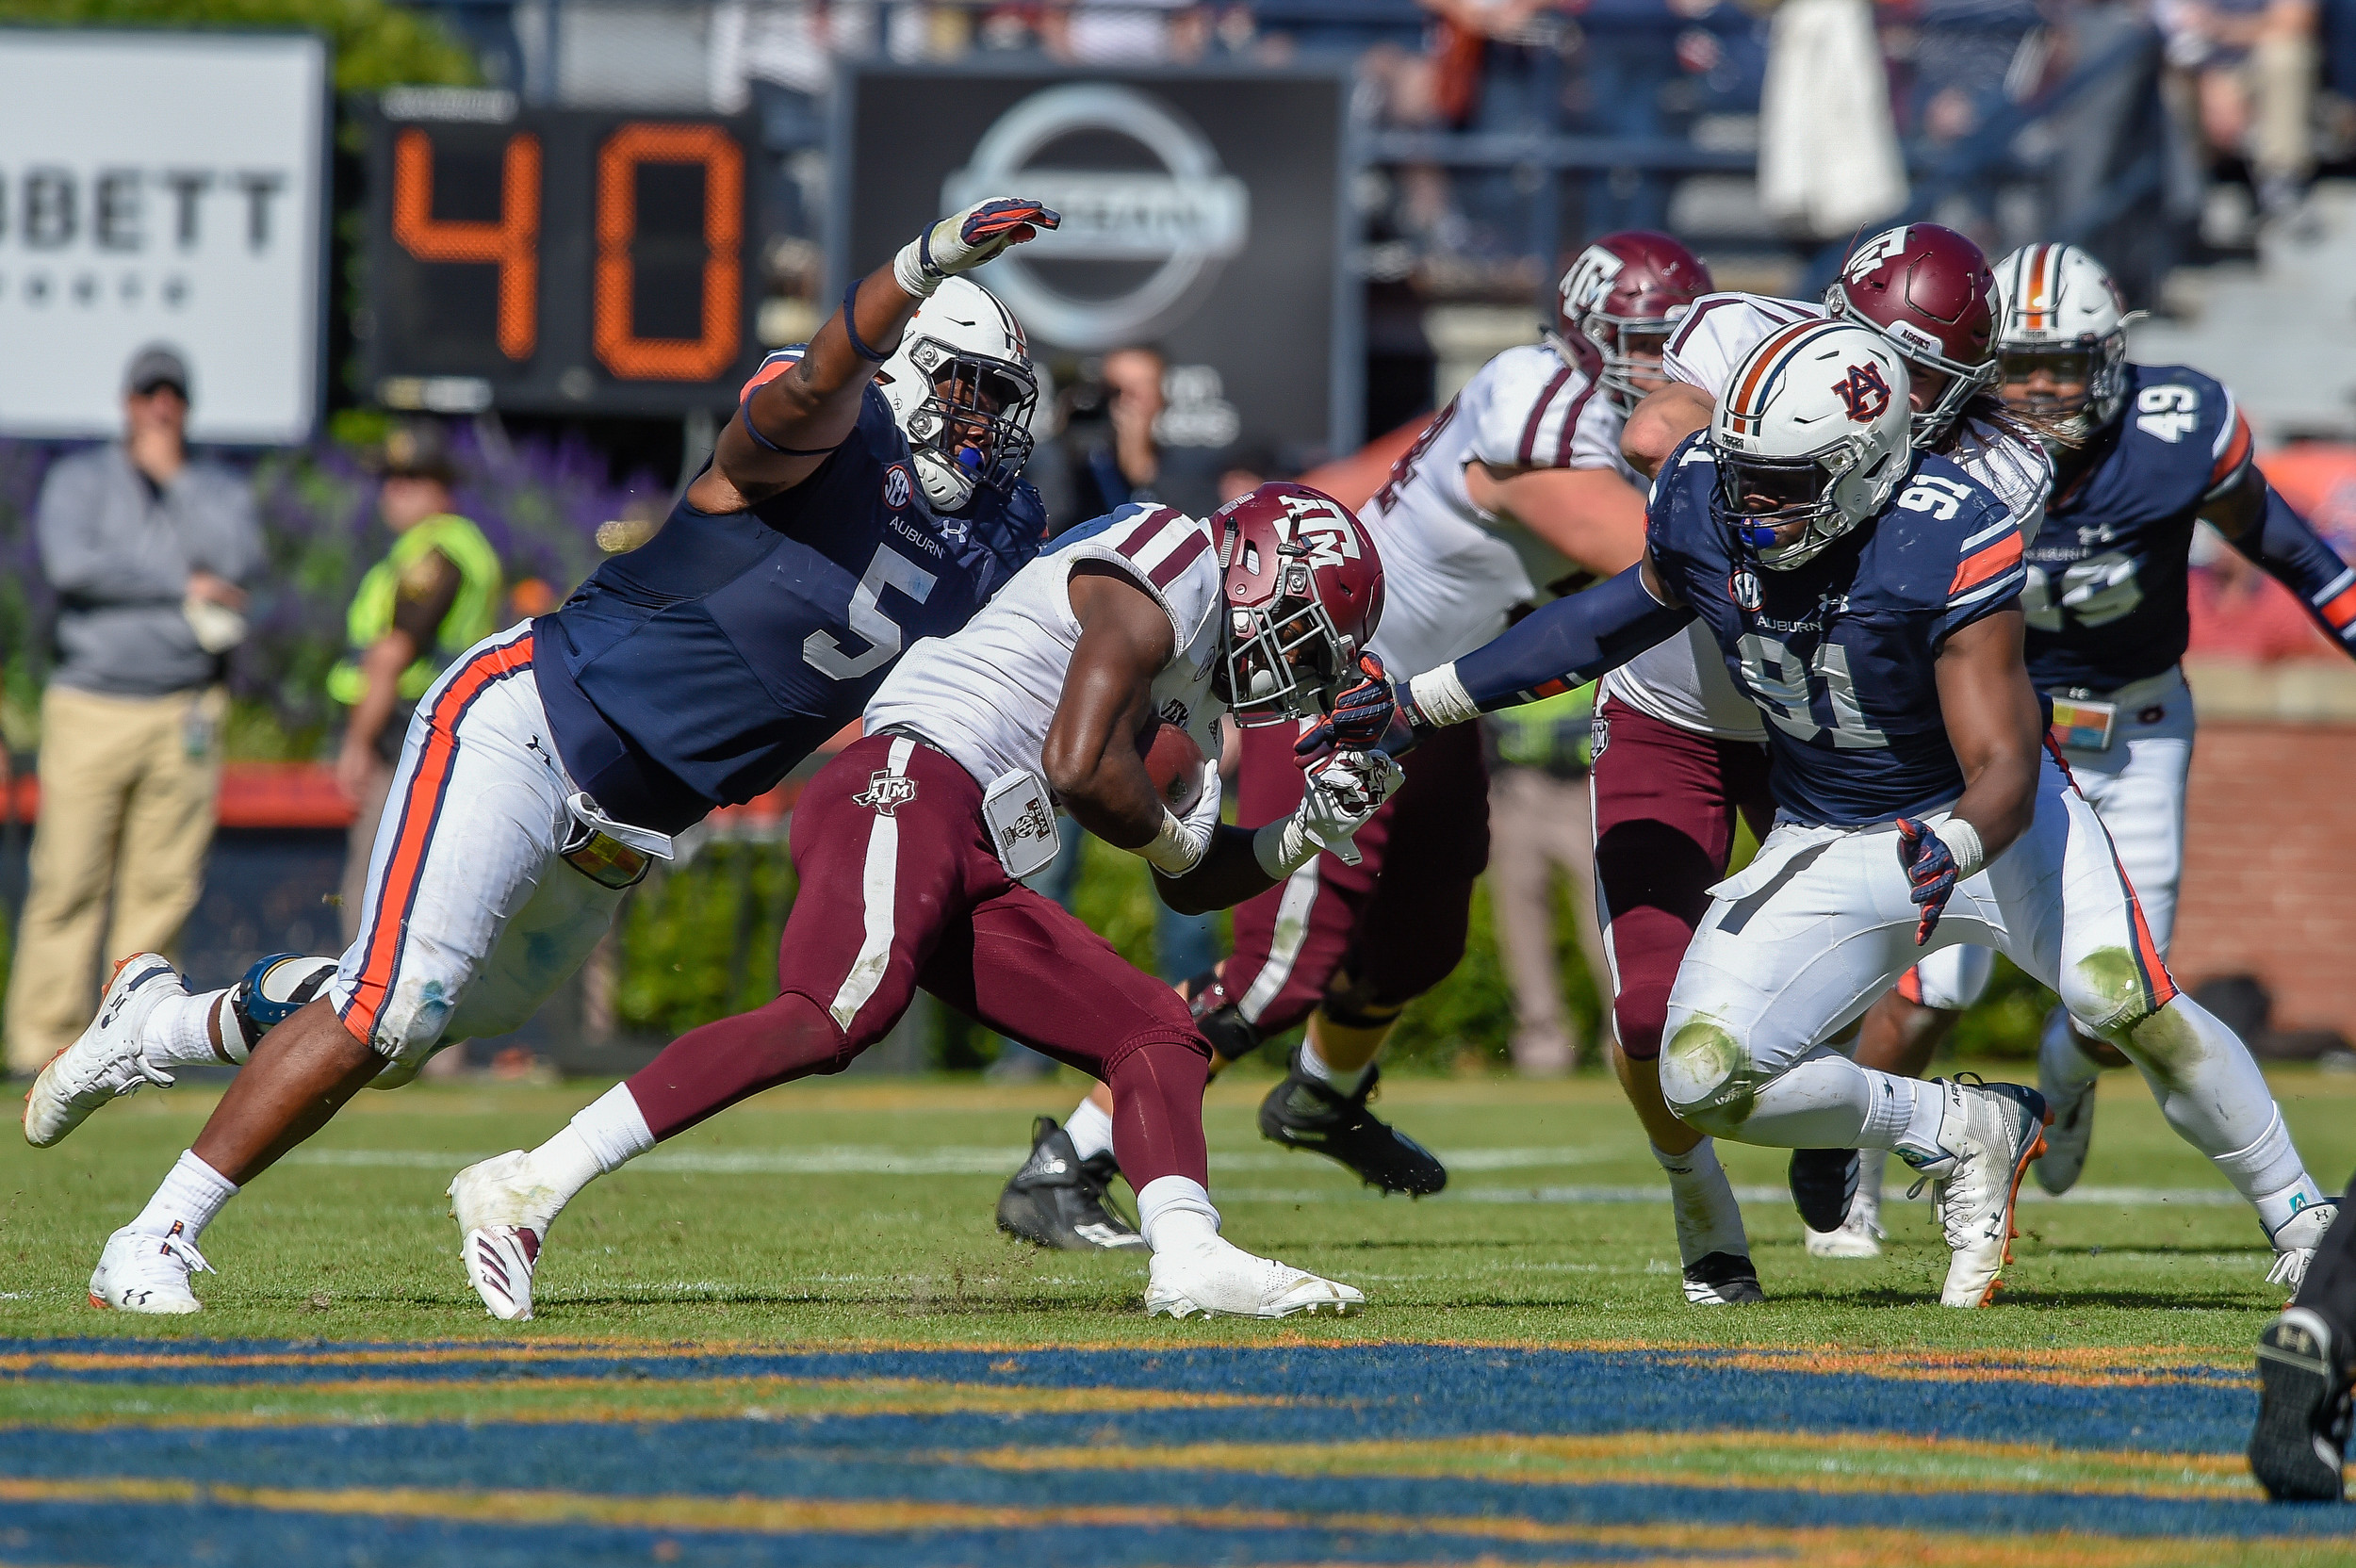 Auburn Tigers defensive linemen Derrick Brown (5) and  Nick Coe (91) bring down Texas A&M Aggies running back Jashaun Corbin (7) during the second half of an NCAA football game against the Texas A&M Aggies Saturday, November 3, 2018, at Jordan-Hare Stadium in Auburn, Ala. (Photo by Jeff Johnsey)